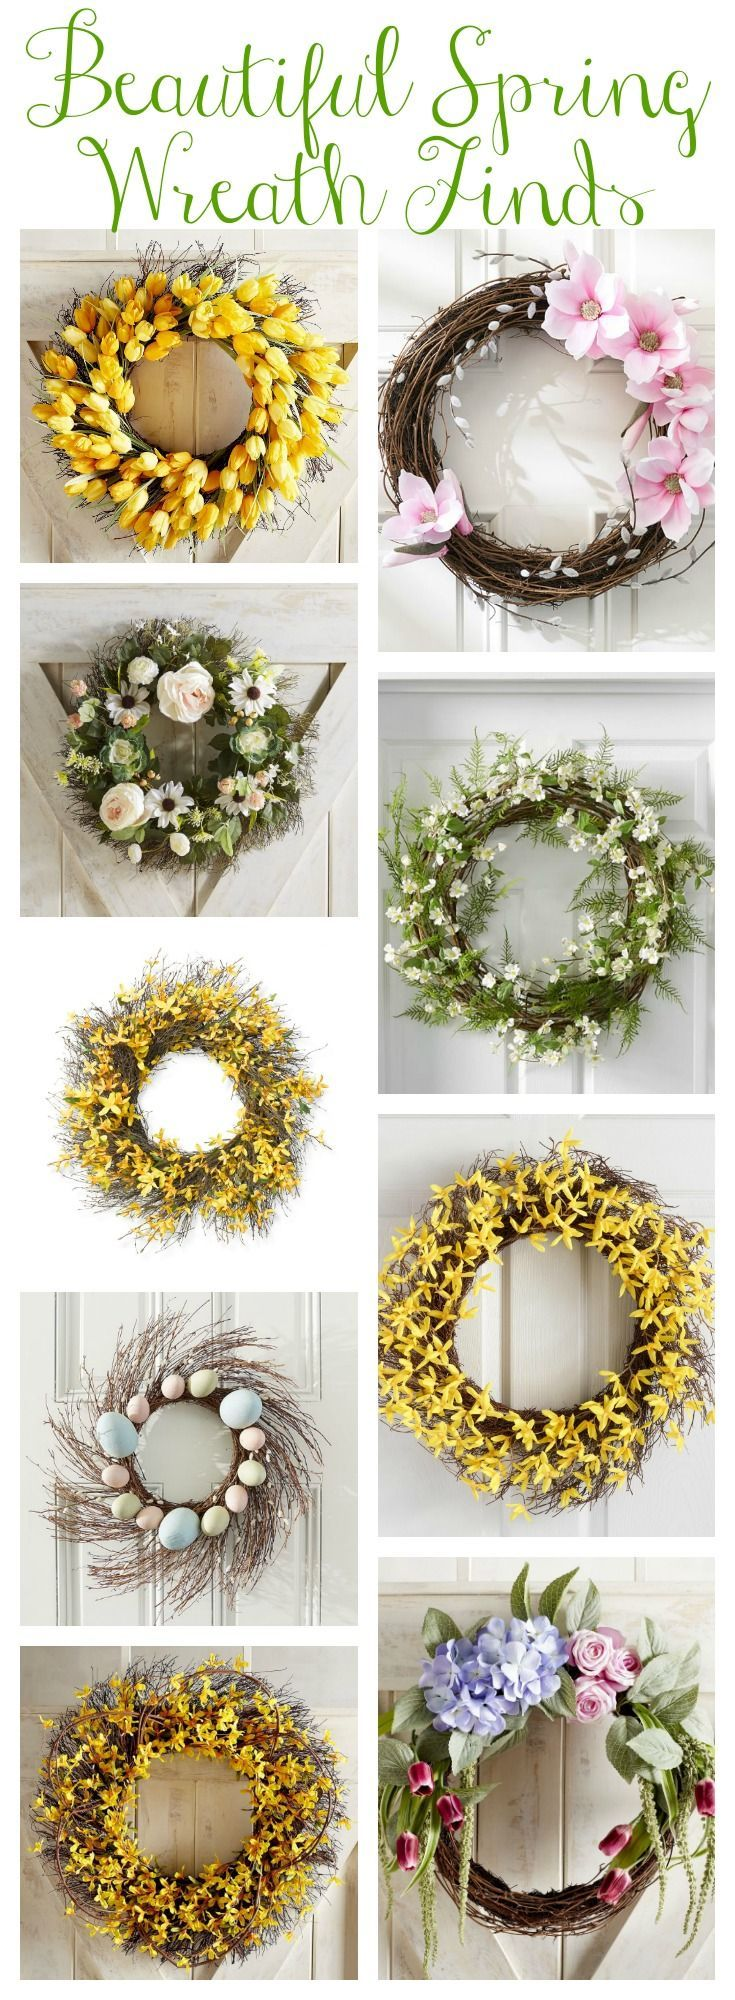 Our Spring Front Porch & Beautiful Spring Wreaths - The Happy Housie